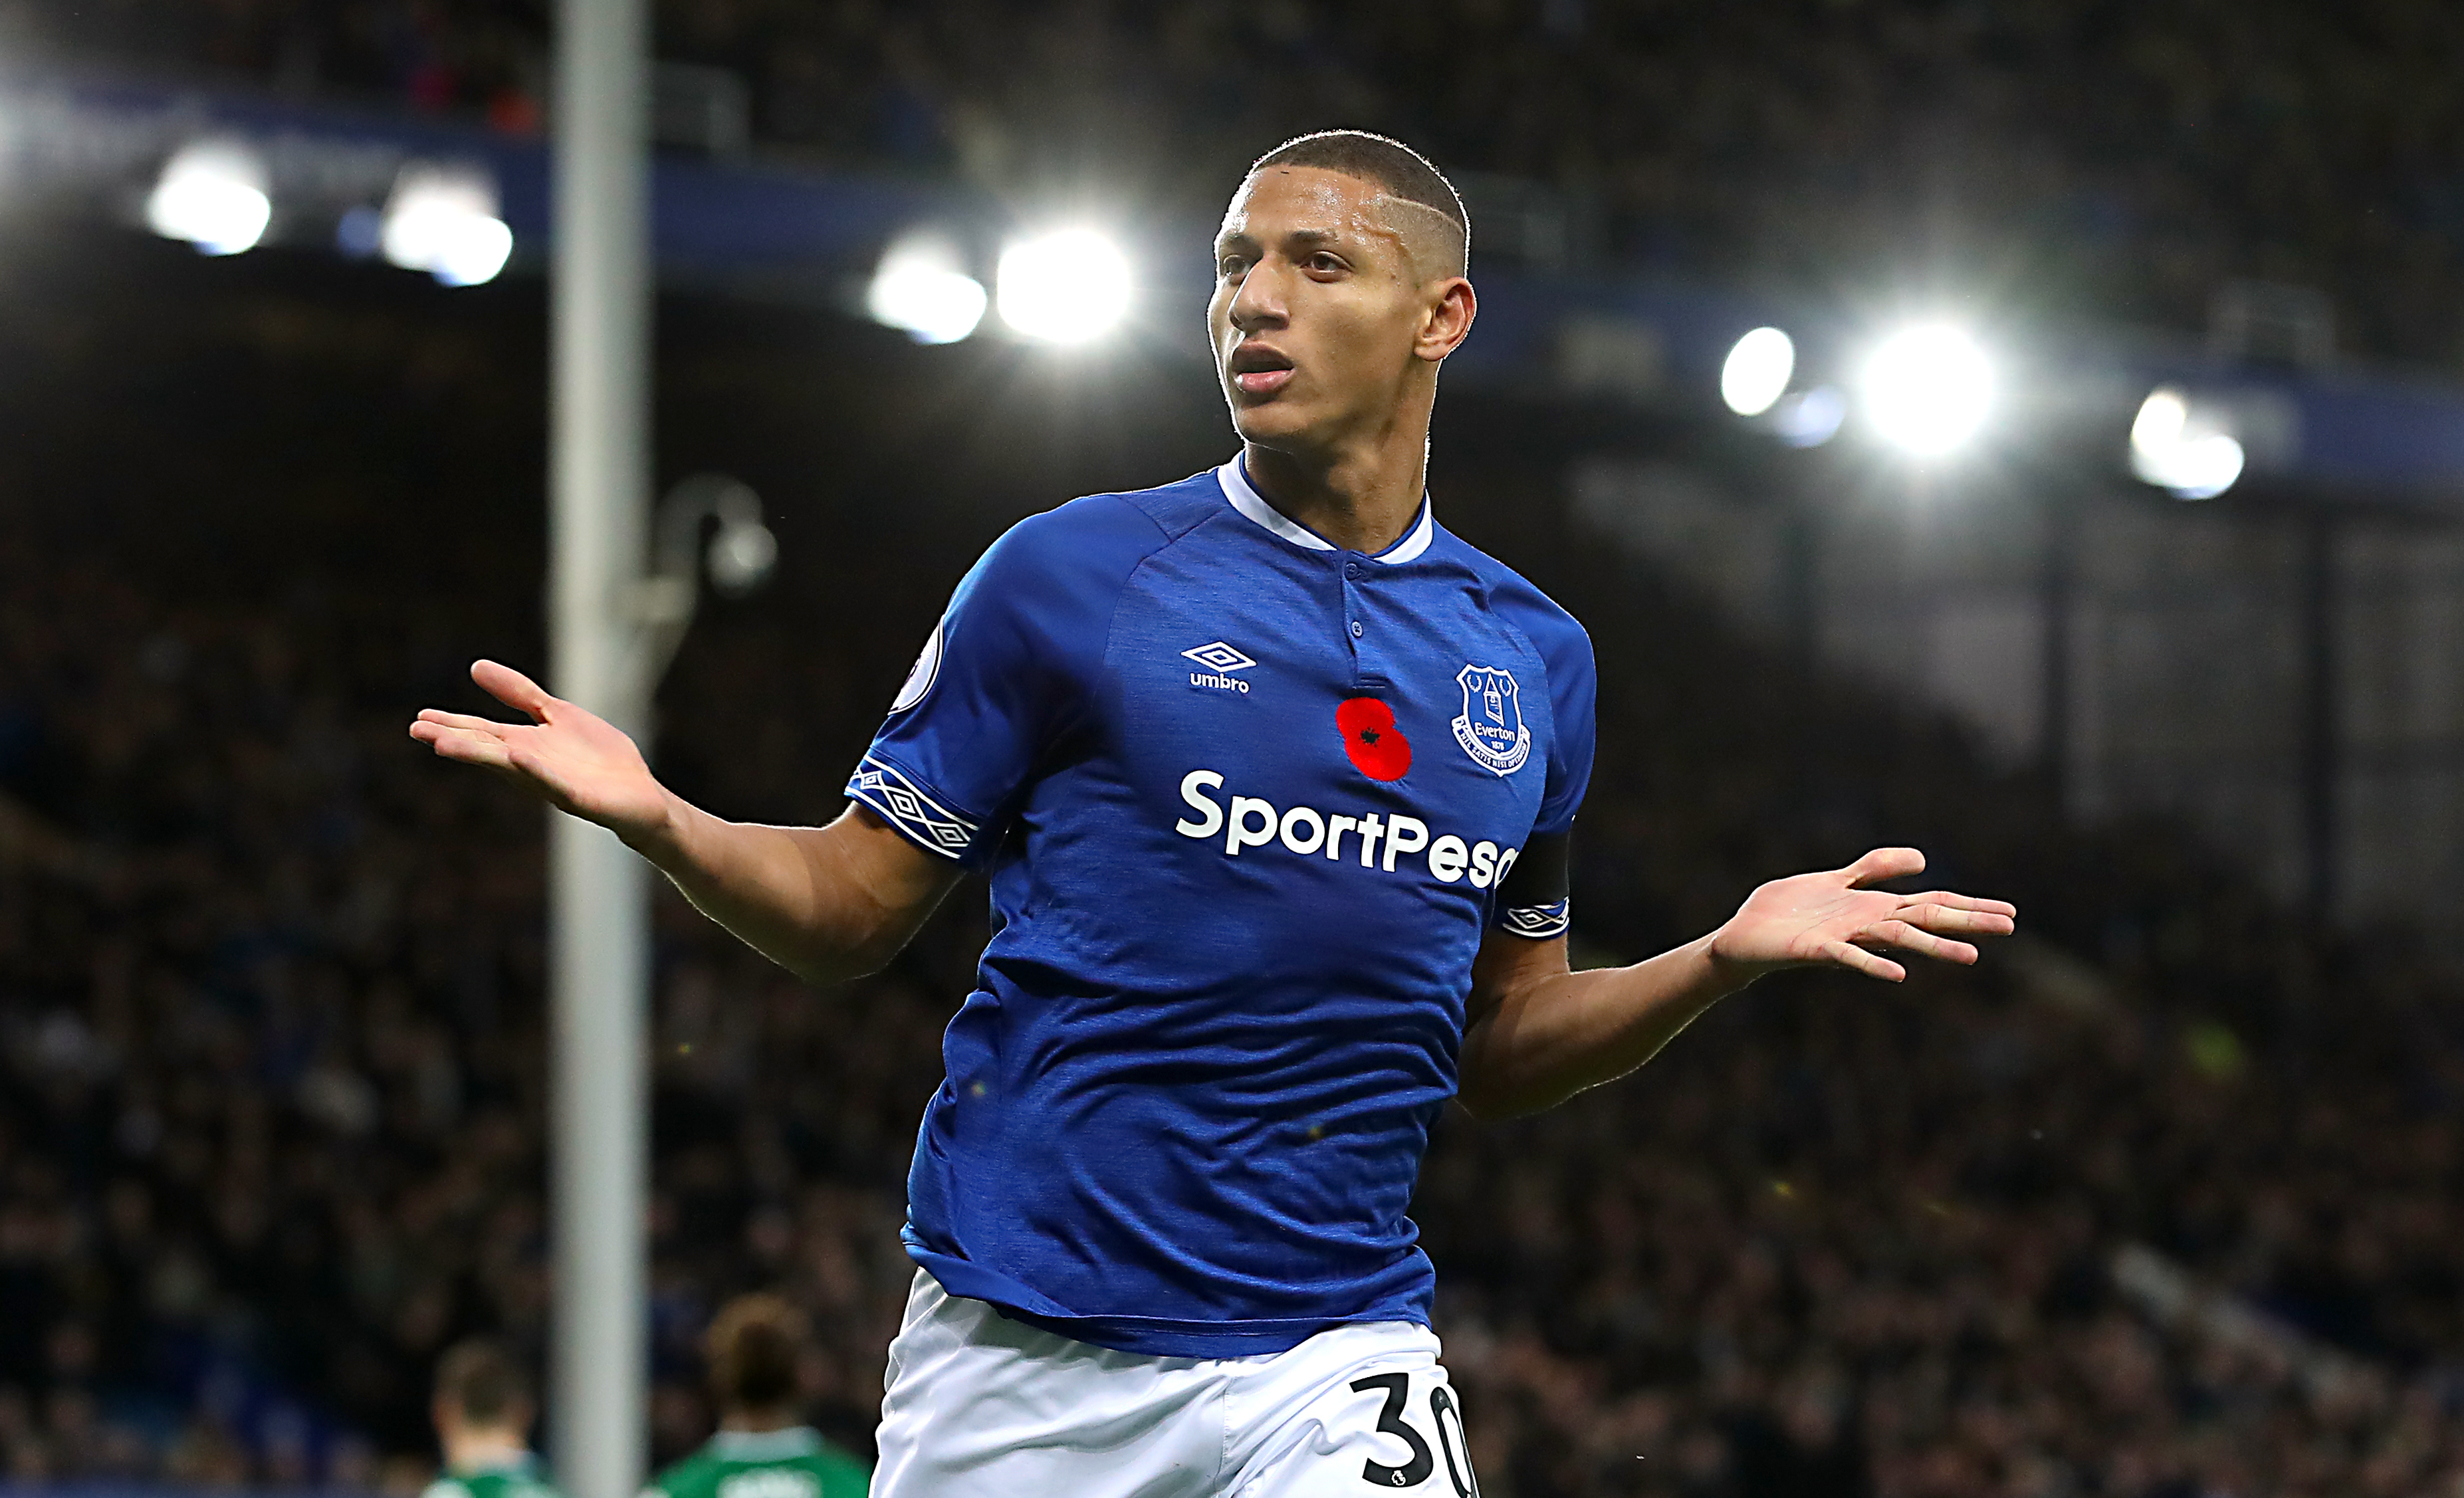 Richarlison's early season form was electric. Image: PA Images